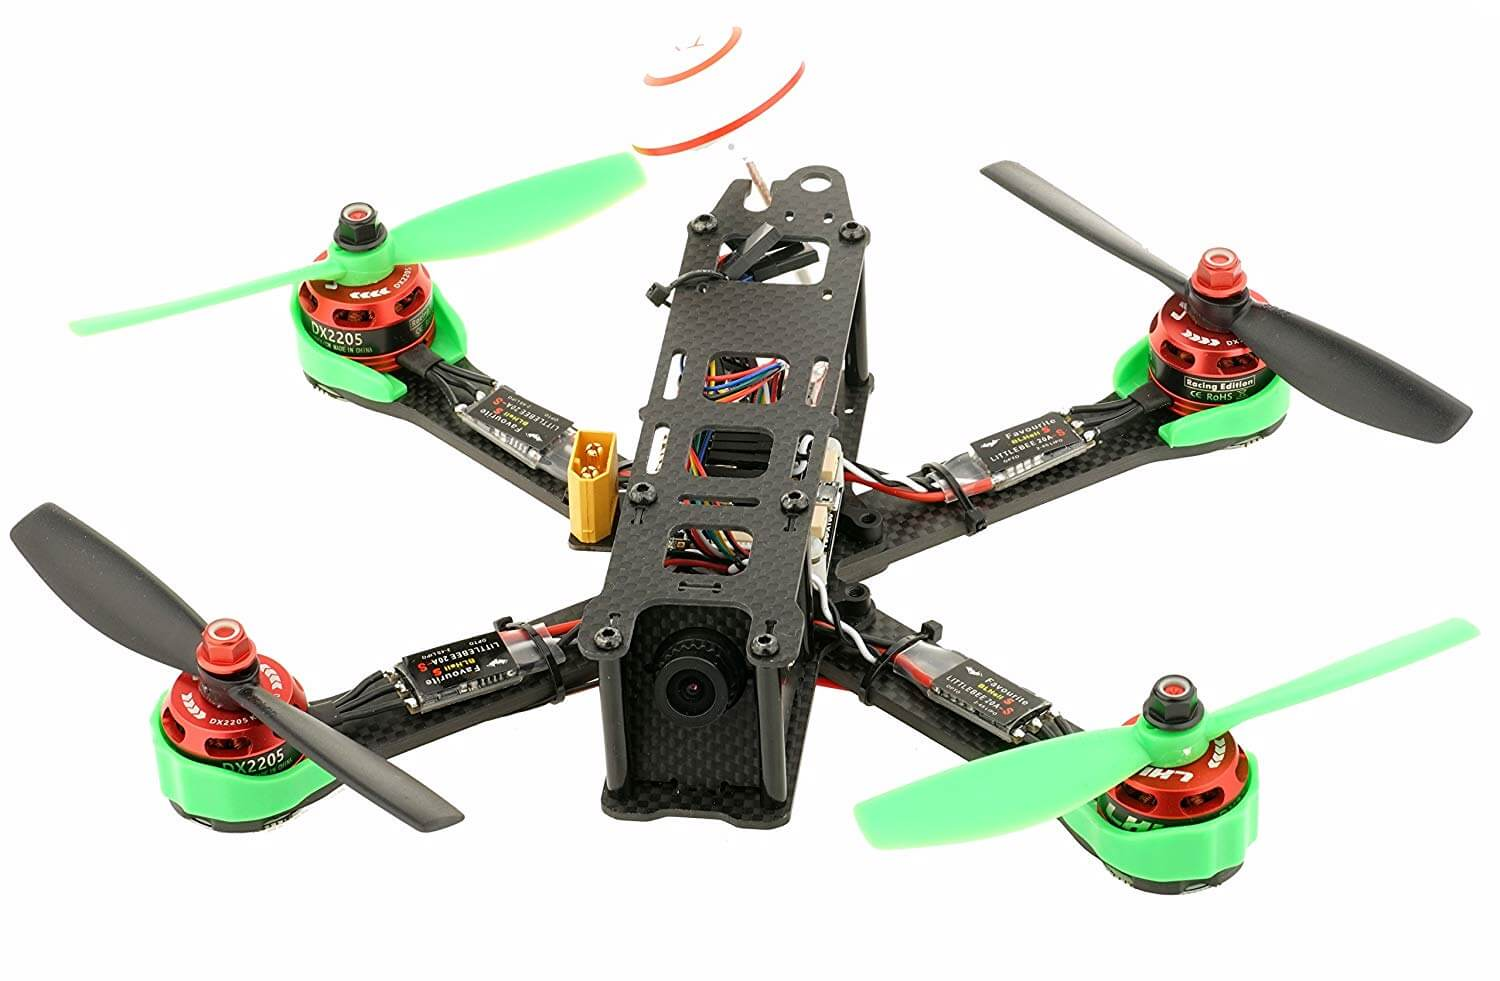 Woafly LHI 220 ARF Drone Review